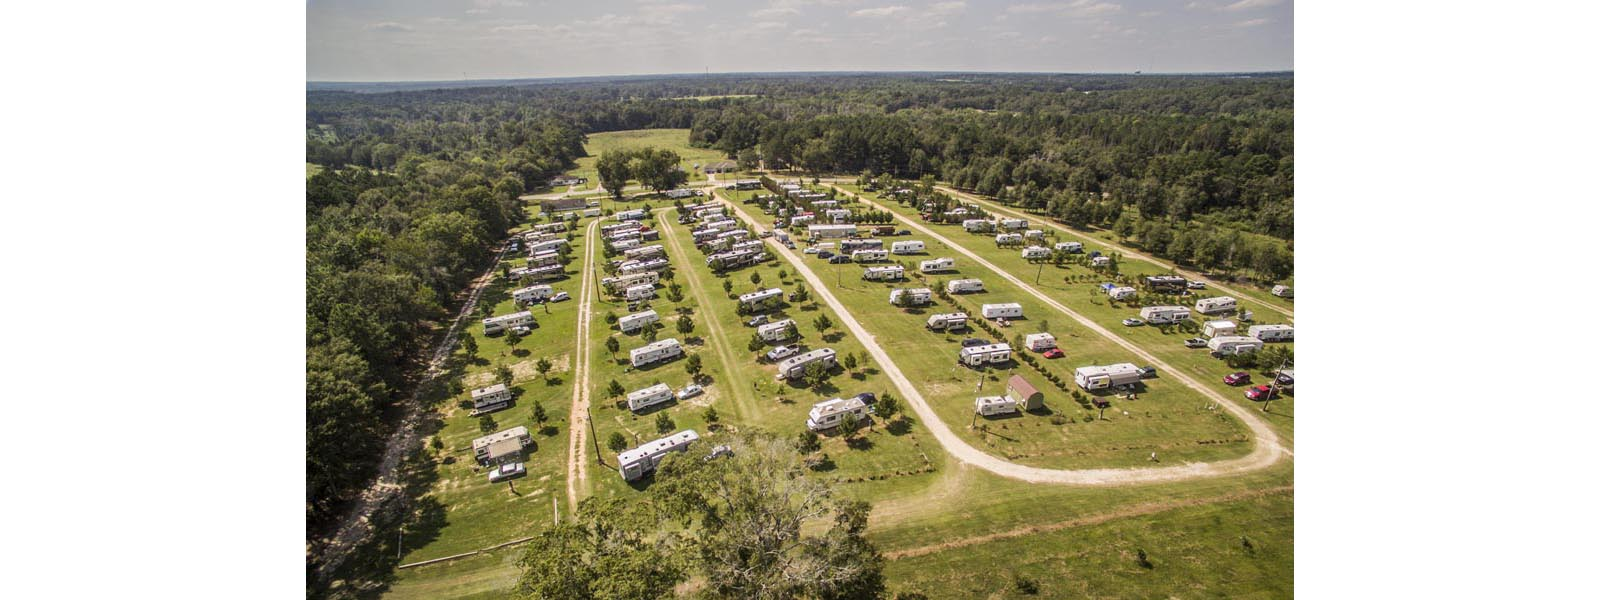 Arial view of the A-Okay Campground